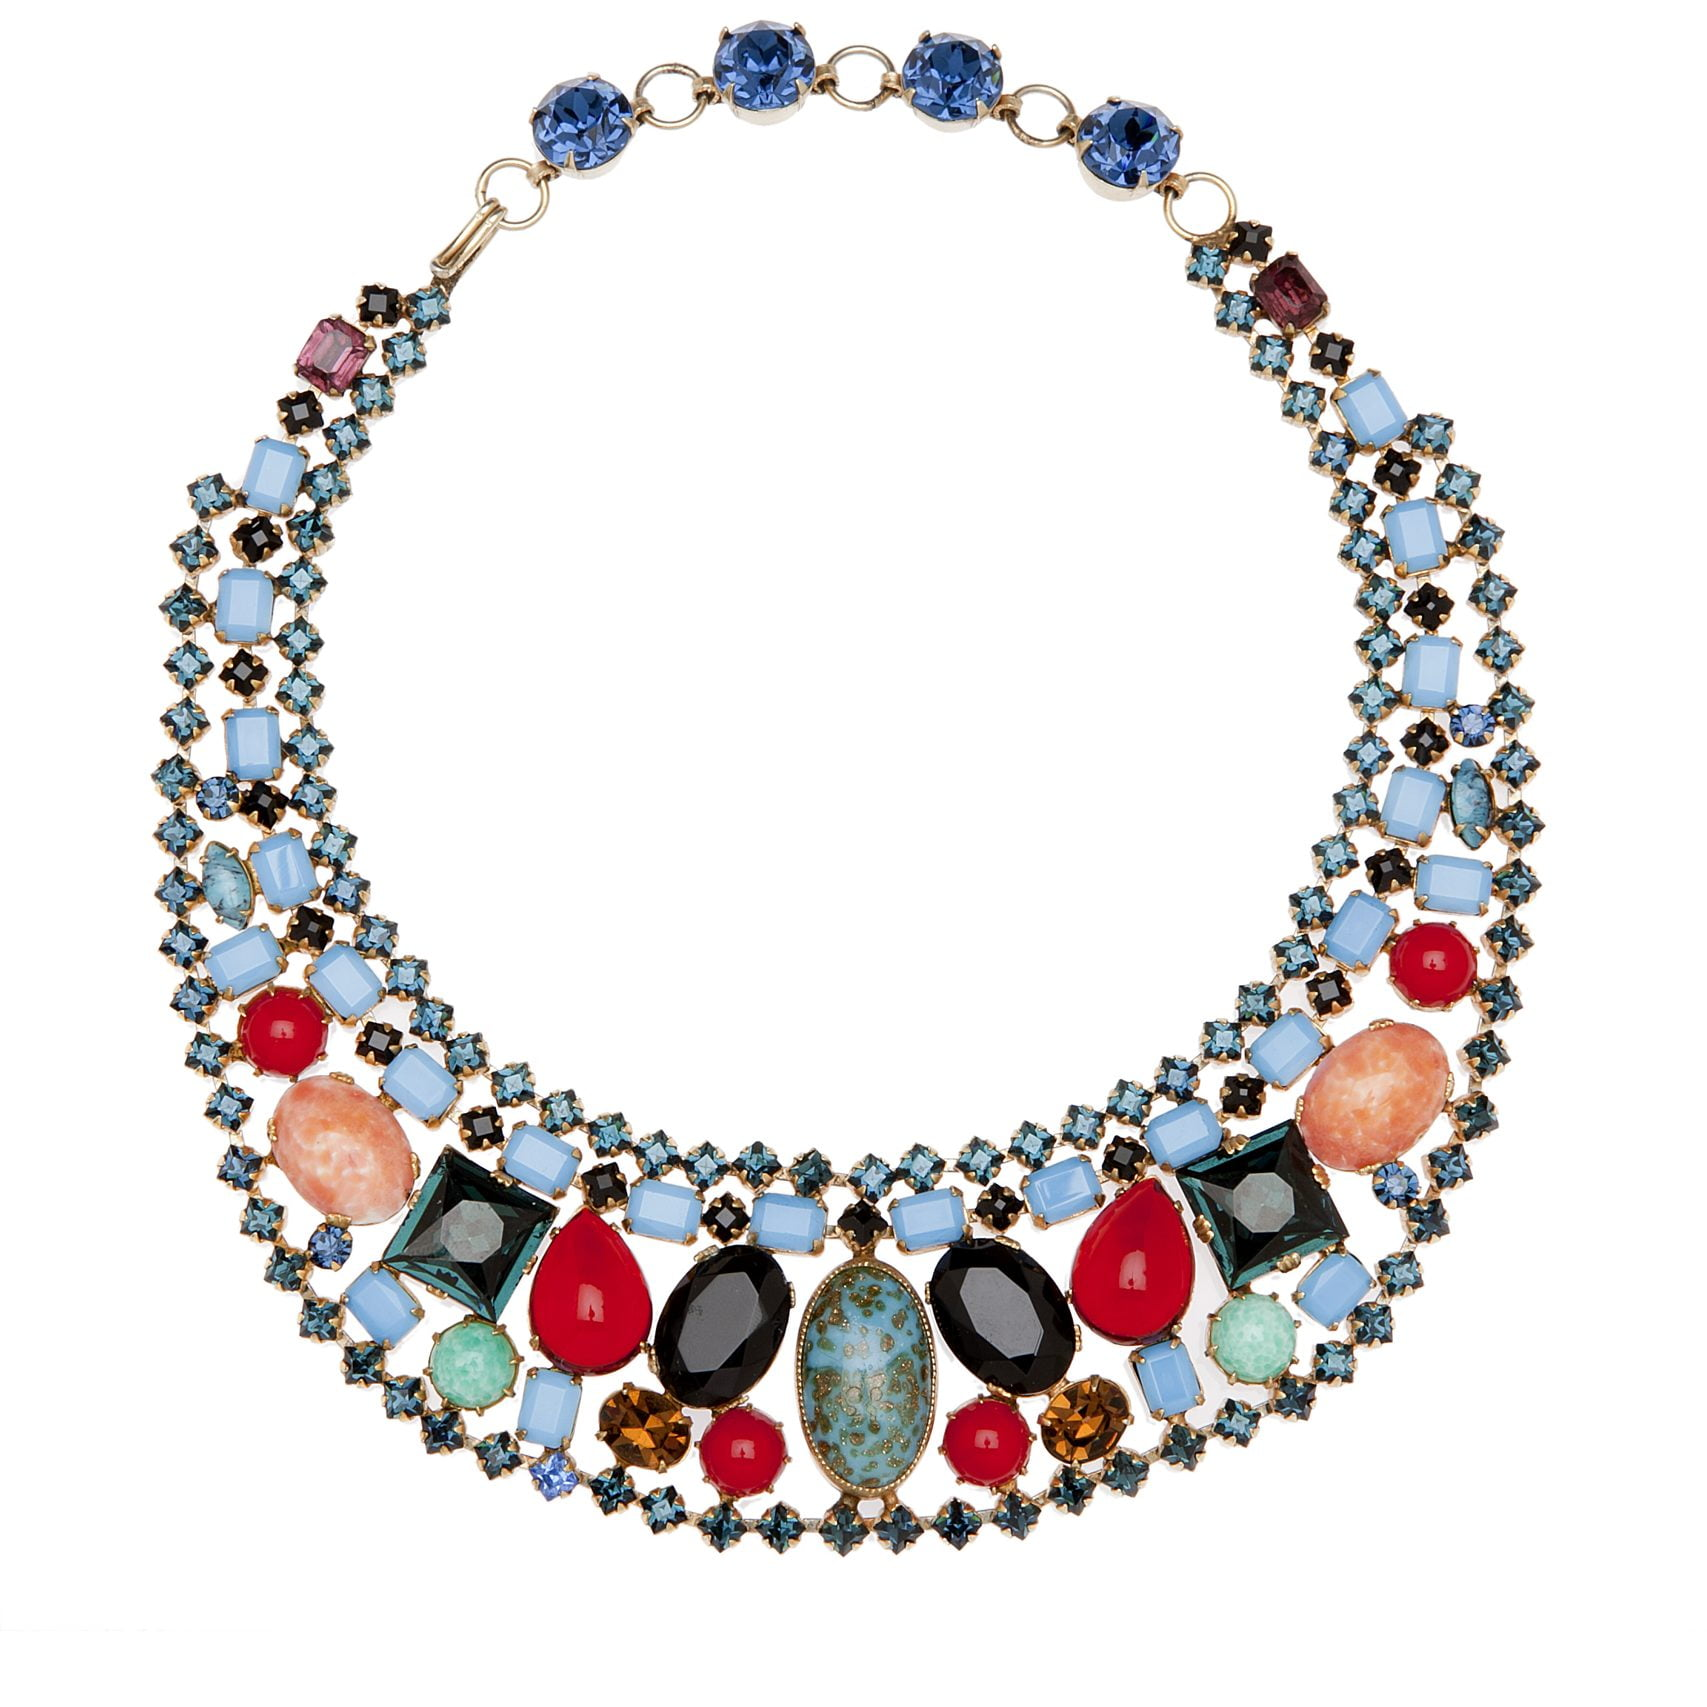 Carole Tanenbaum, Costume Jewelry Collector